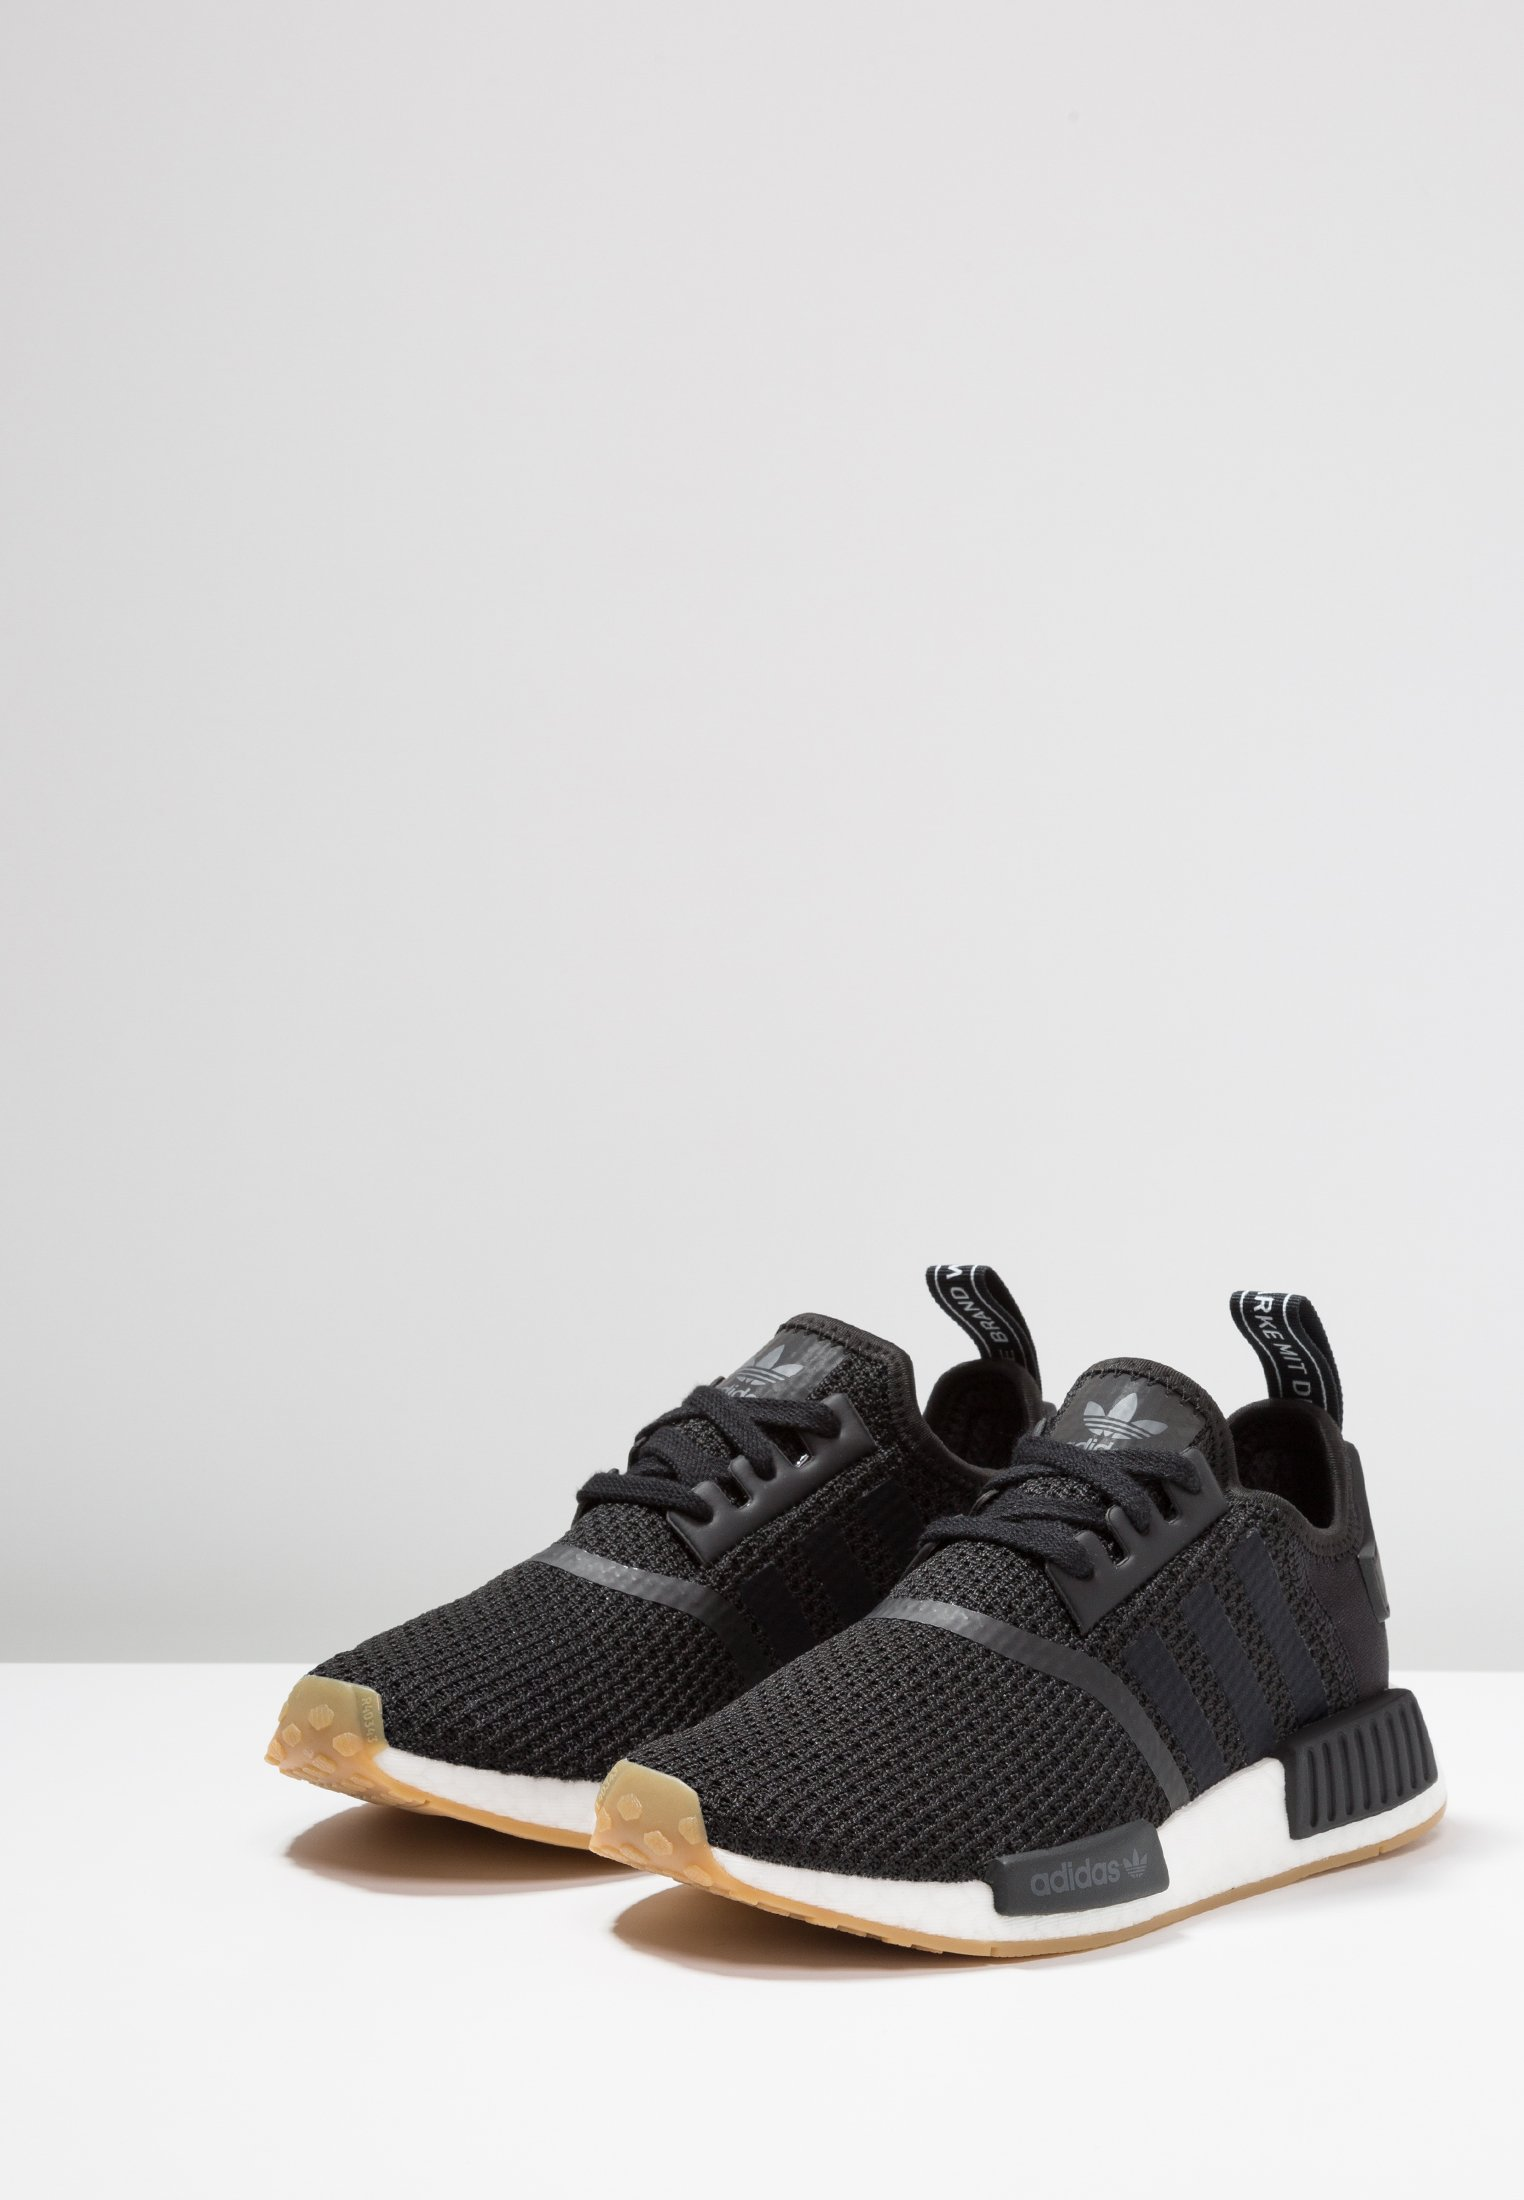 adidas Originals NMD_R1 Sneaker low core black/schwarz